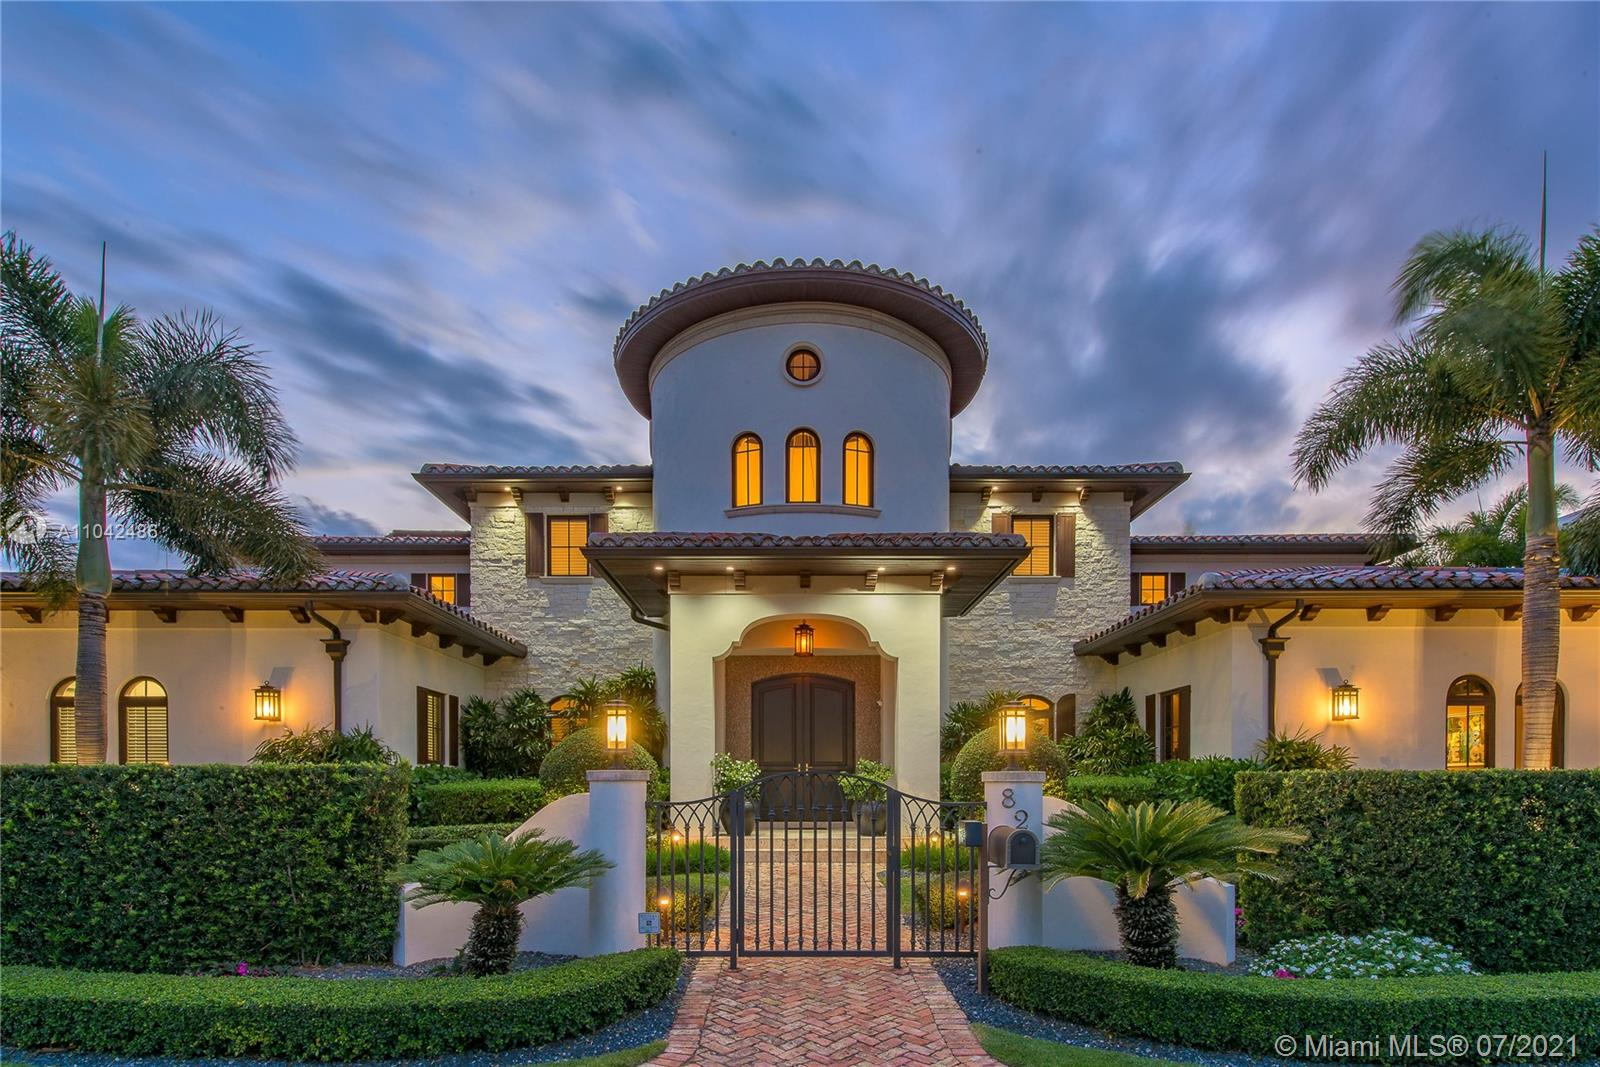 """Proudly presenting the most breathtaking home in Ft Lauderdale. Gracing the covers of national luxury magazines, this magnificent Santa Barbara style estate features exceptional custom interior design. Nearly 10,000 square feet of refined living including, but not limited to, theatre with onyx bar, library, five fireplaces, 3 laundry rooms, 120ft of ocean access waterfront: 10 minutes to the cut, saltwater infinity pool, and 2000 bottle wine room. The incomparable view allows you a """"private' front row seat on the intracoastal to watch the boats streaming by. This unique home must be toured to appreciate the level of detail and craftsmanship. Architecture by Bob Tuthill Interior Design: Marci Varca of MJB Design Group."""